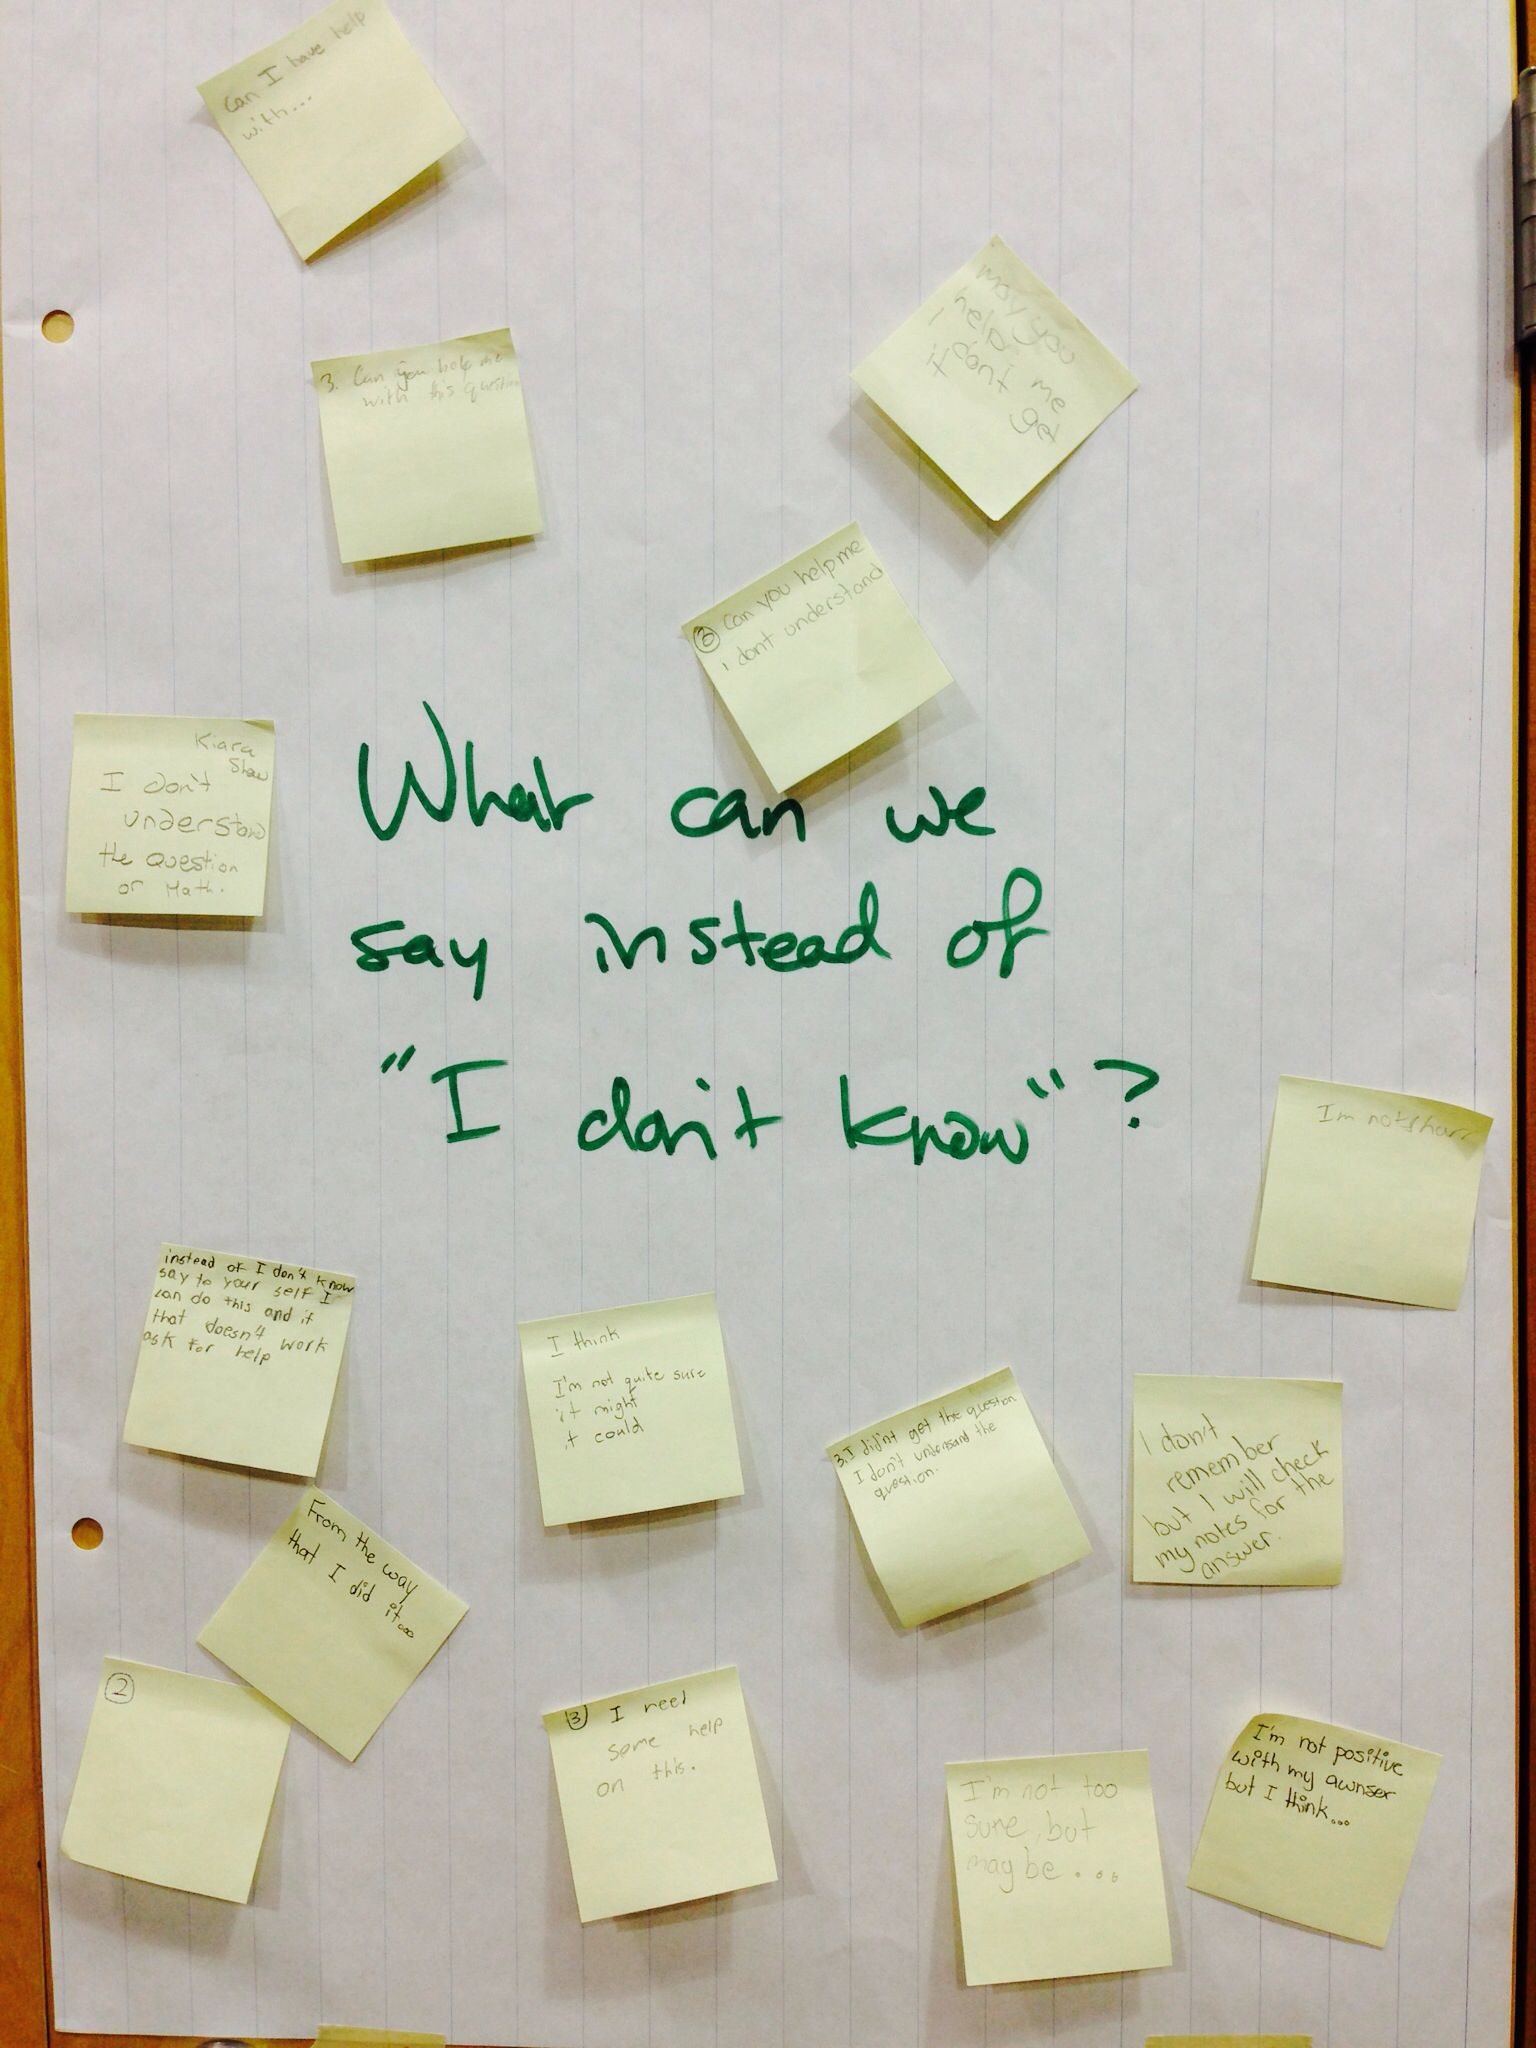 """What can we say instead of """"I don't know"""". Class discussion."""